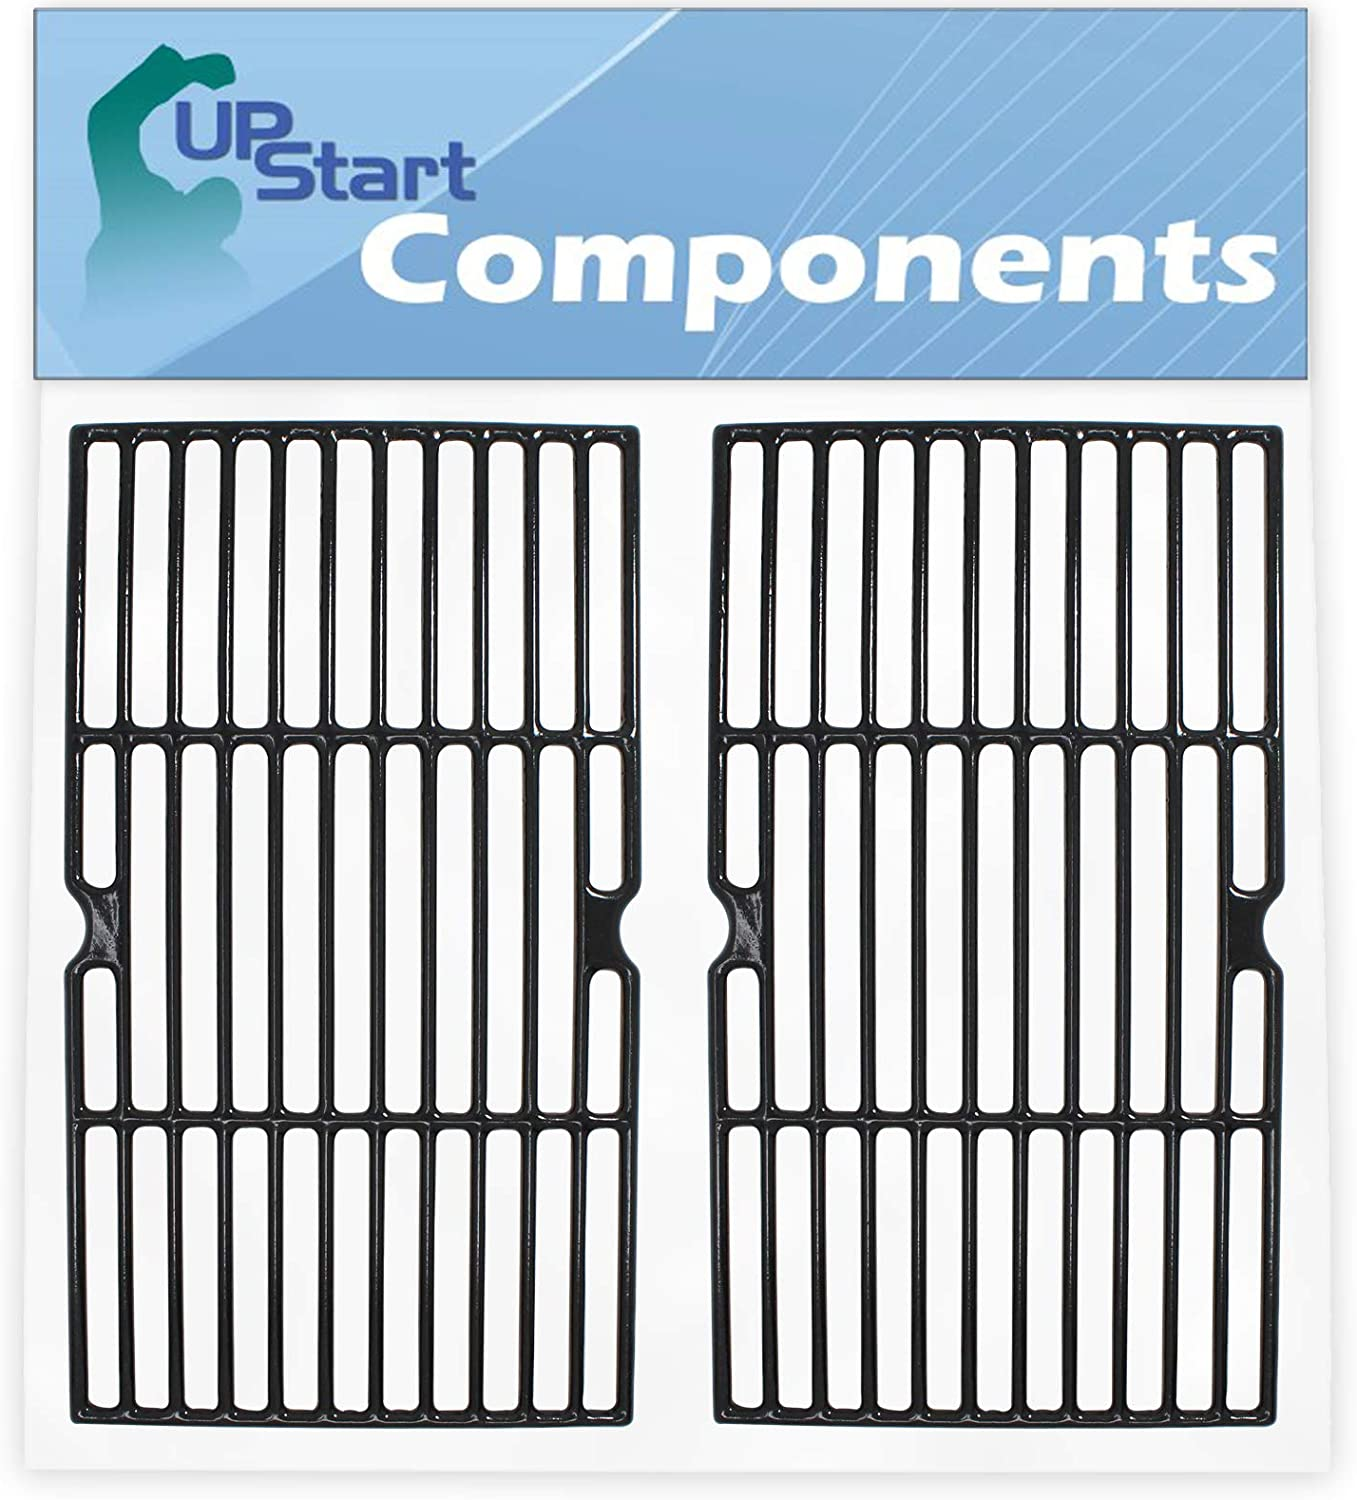 UpStart Max 88% OFF Components 2-Pack BBQ Max 86% OFF Grill Replacement Grates P Cooking